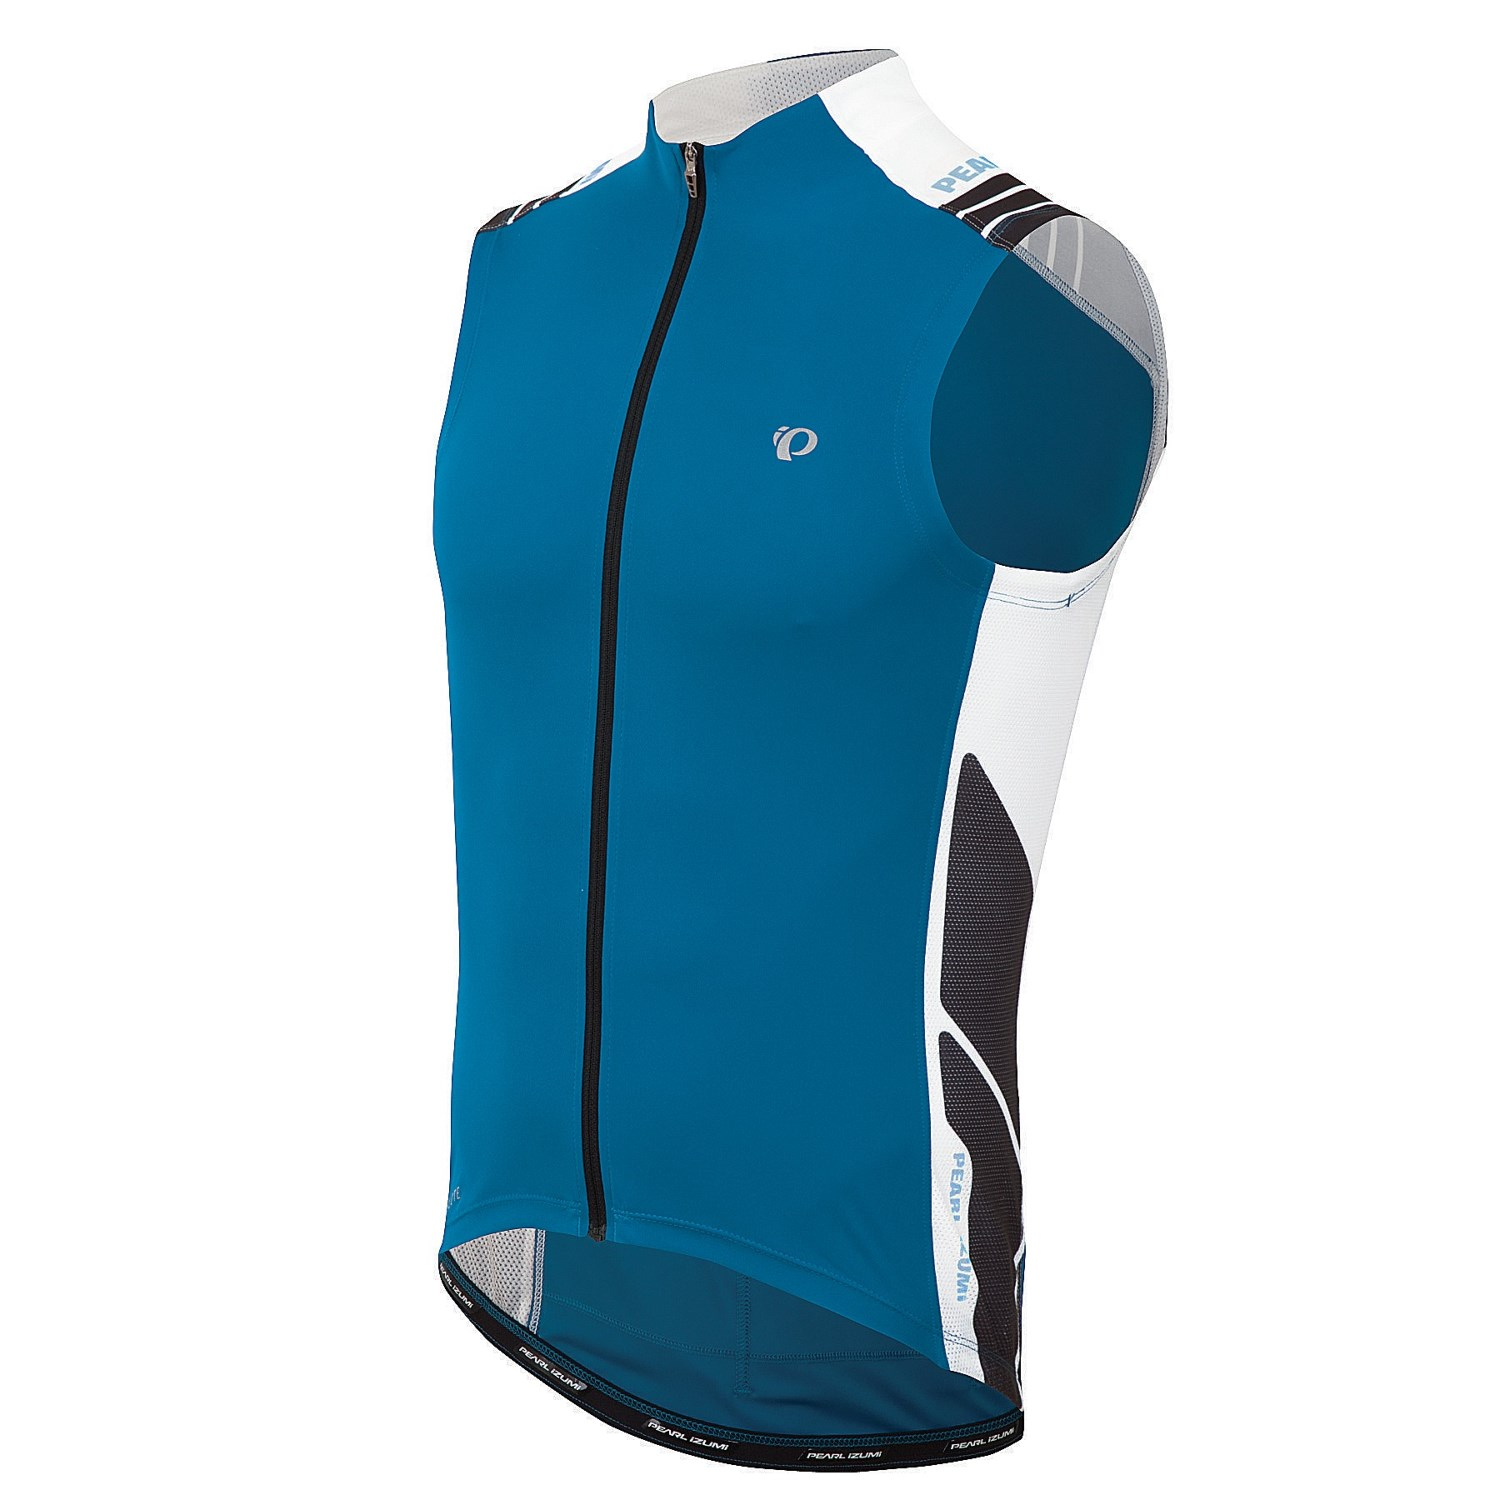 Pearl izumi elite cycling jersey sleeveless for men in for Pearl izumi cycling shirt